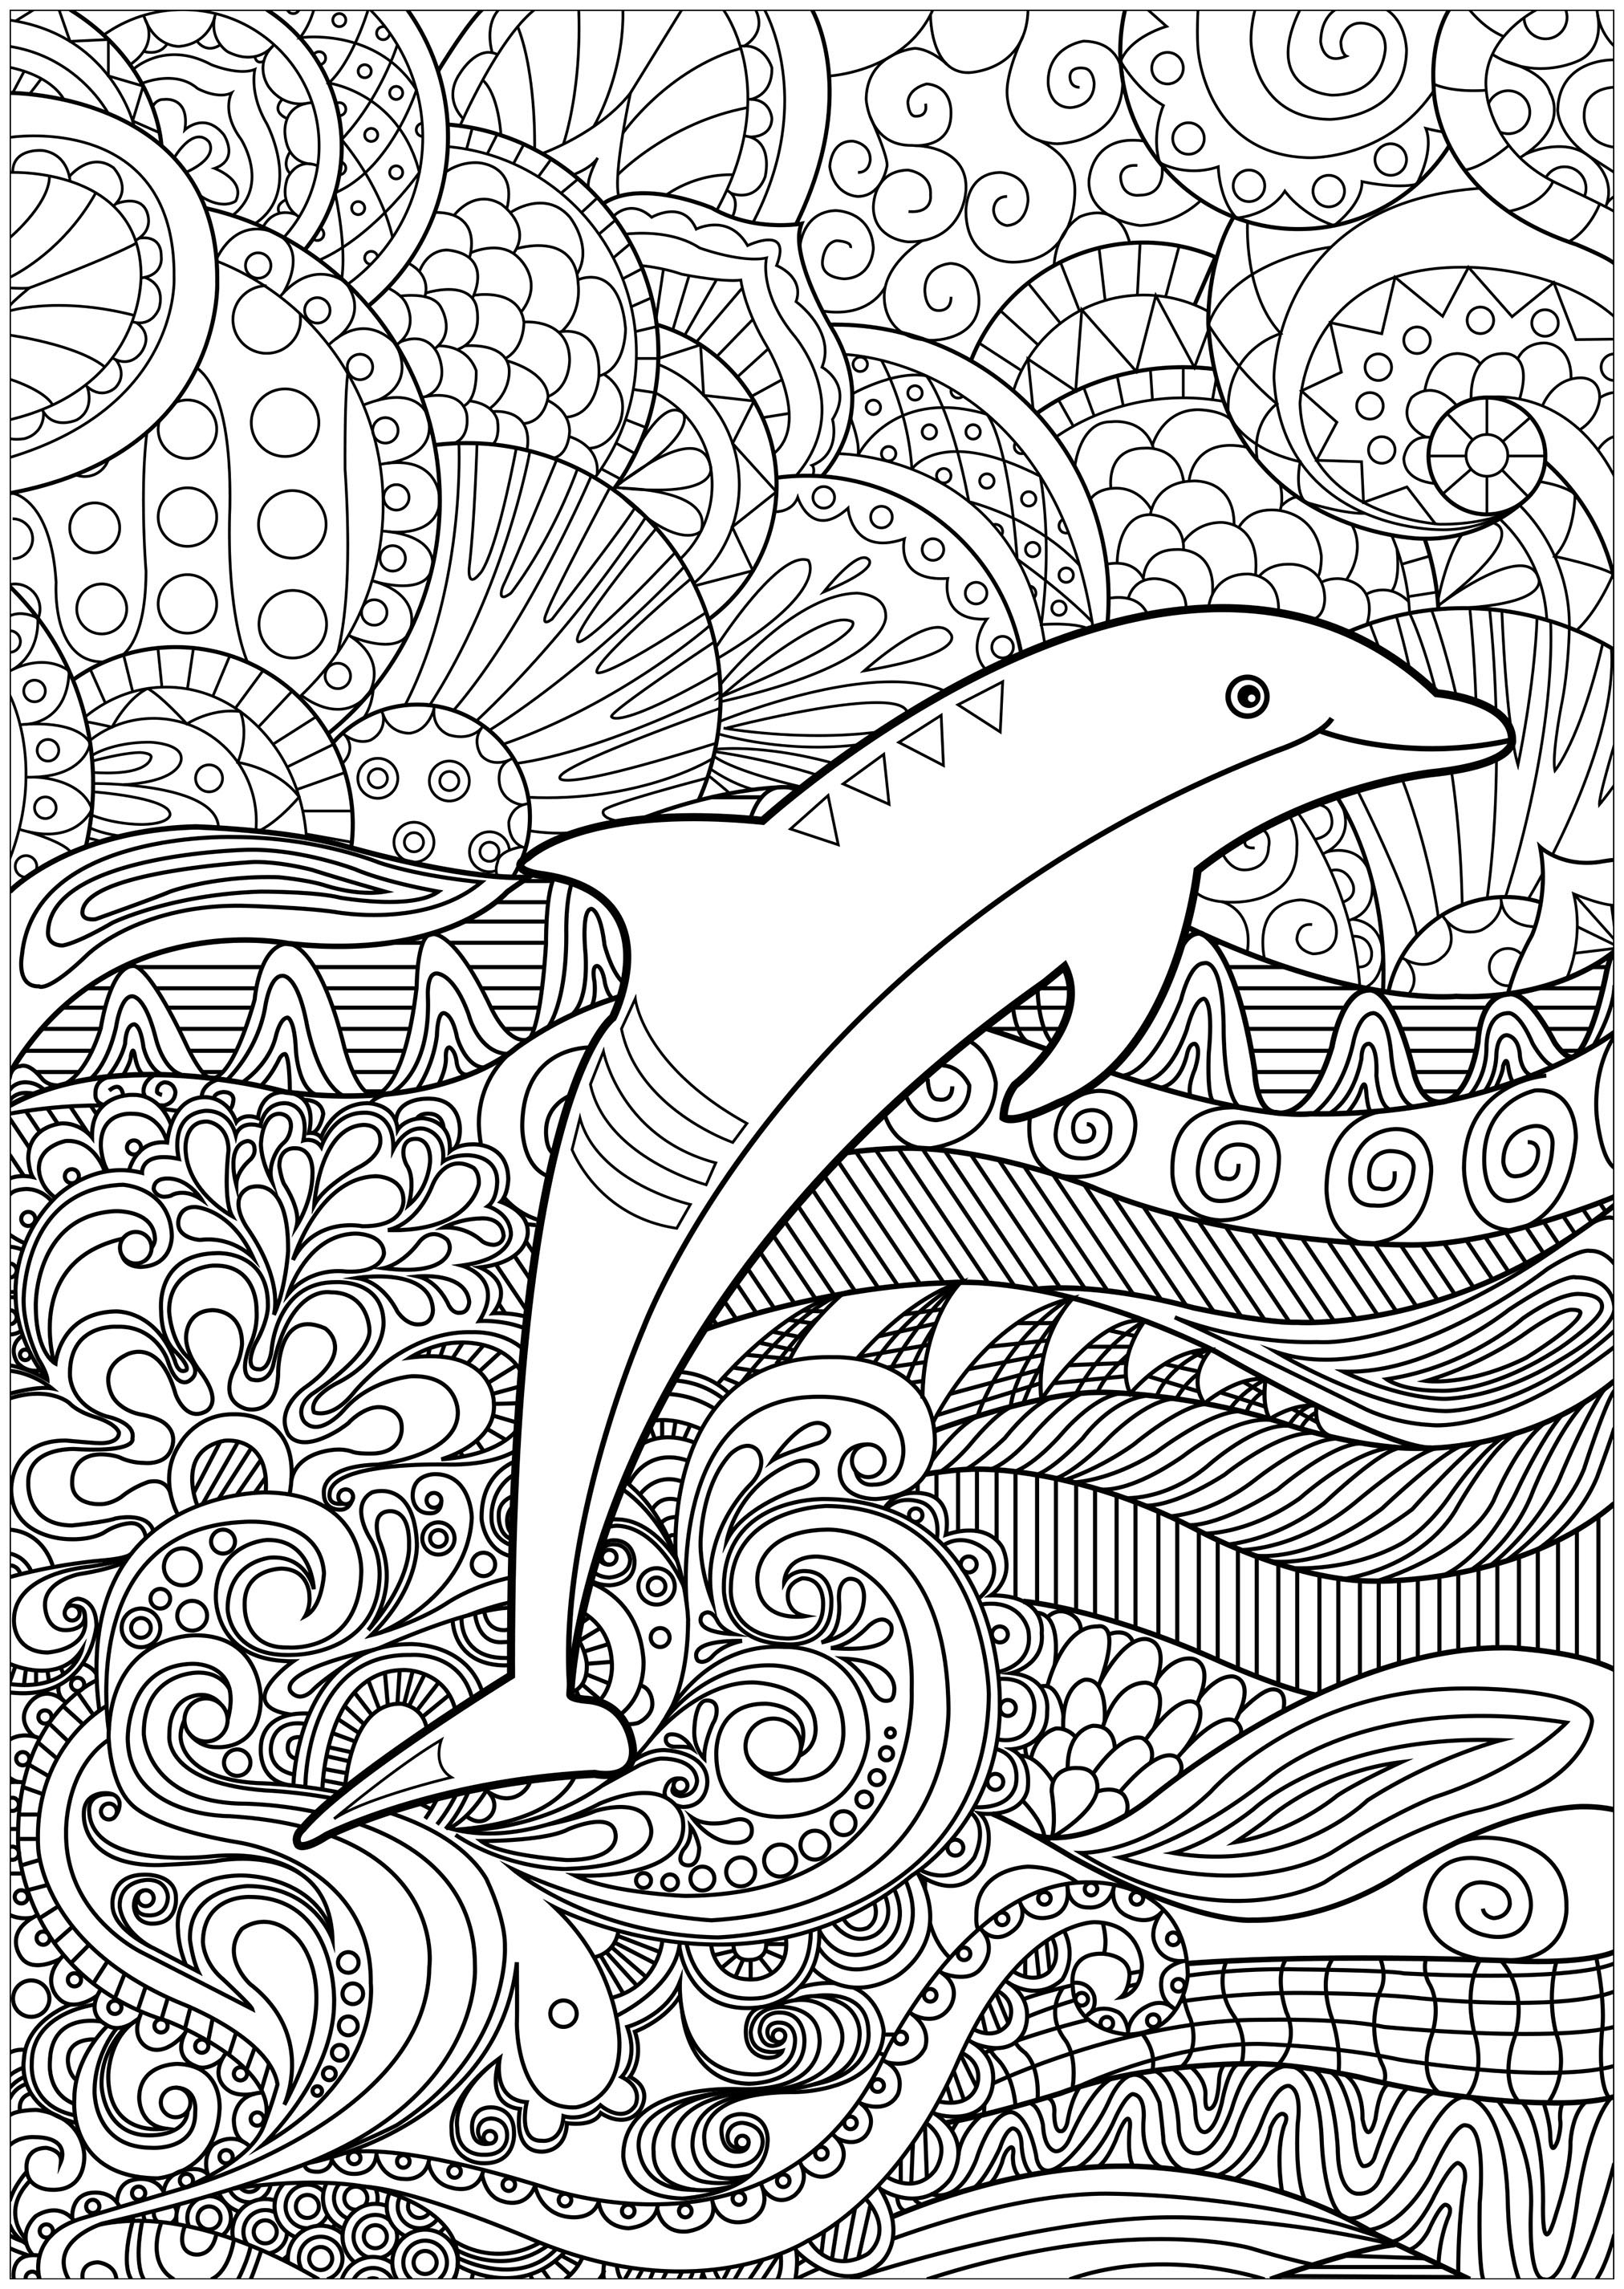 coloring pages dolphin adult coloring pages dolphin at getdrawings free download pages coloring dolphin